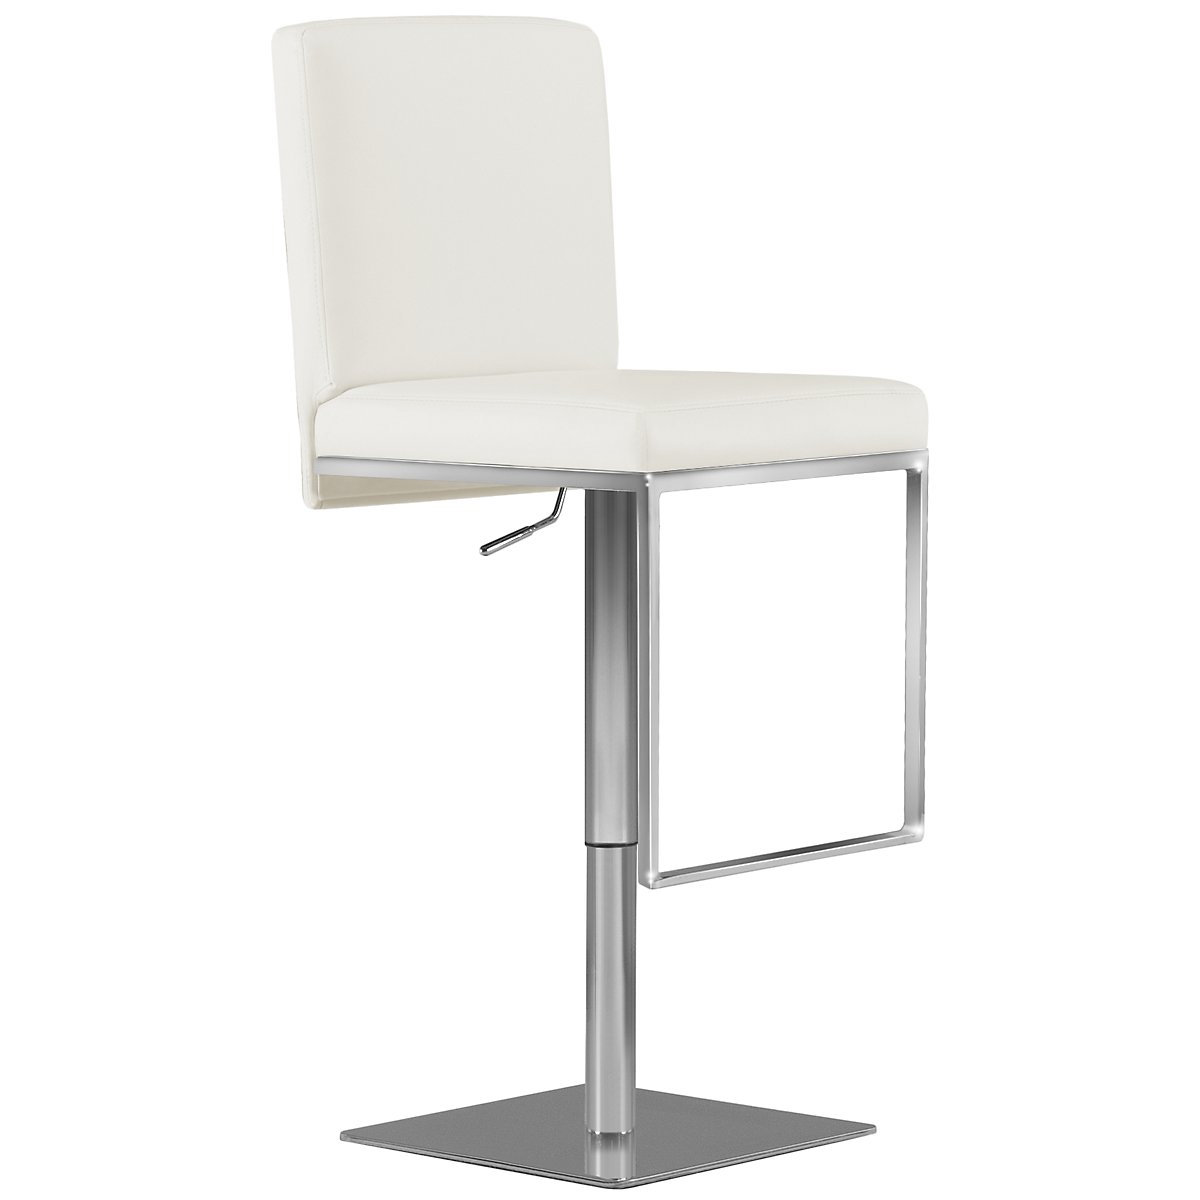 Berlin White Upholstered Uph Adjustable Stool